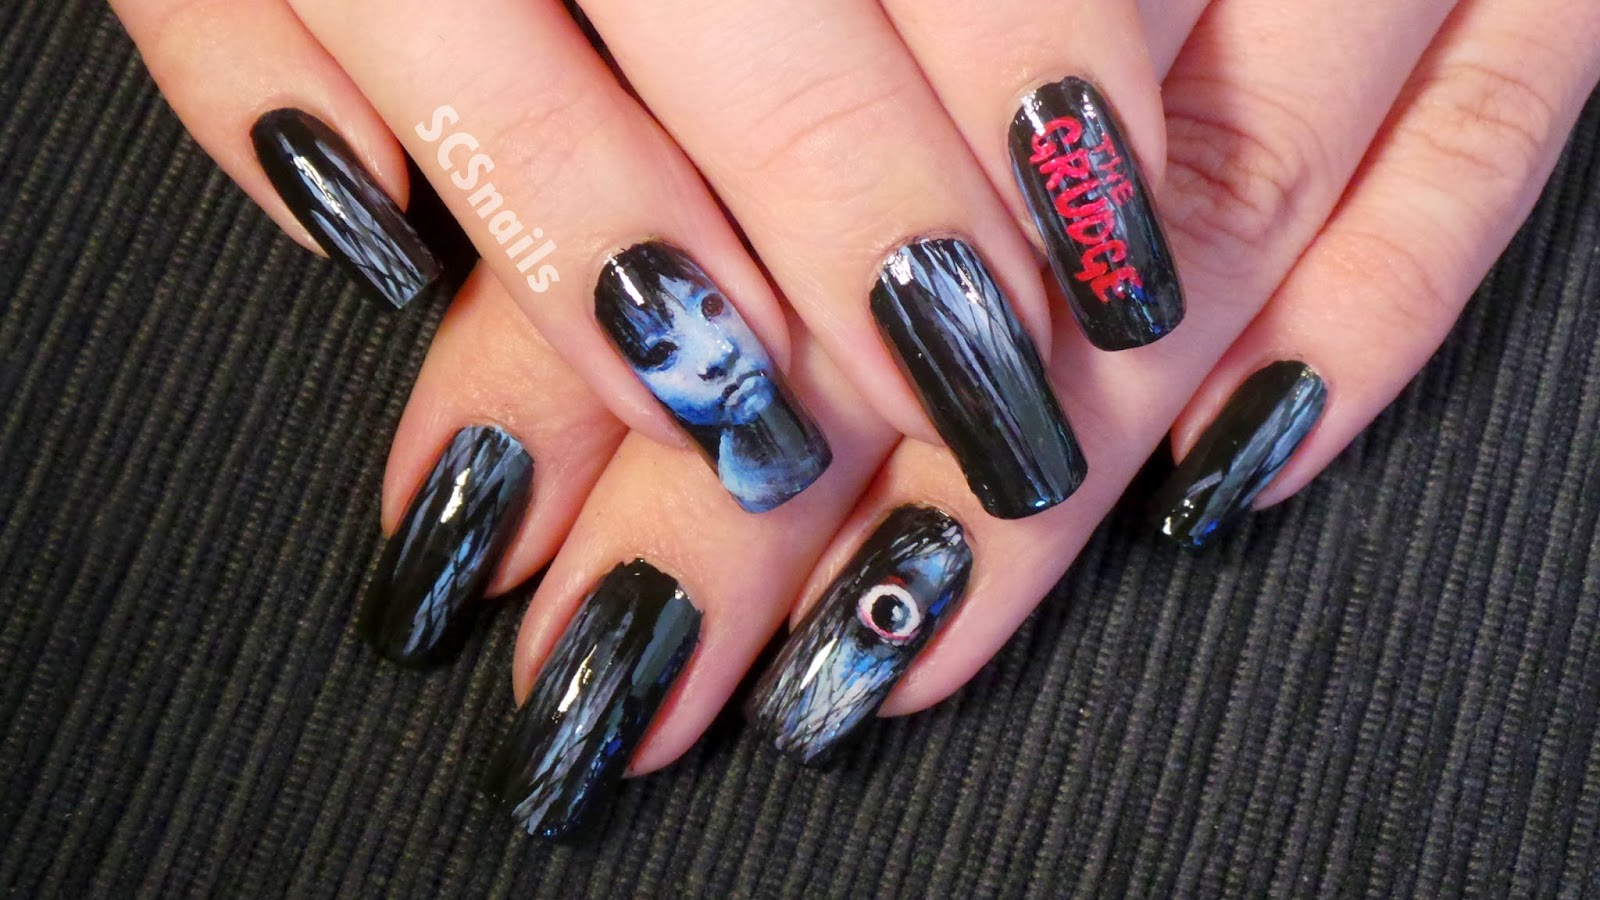 SCS nails: the Grudge nail art